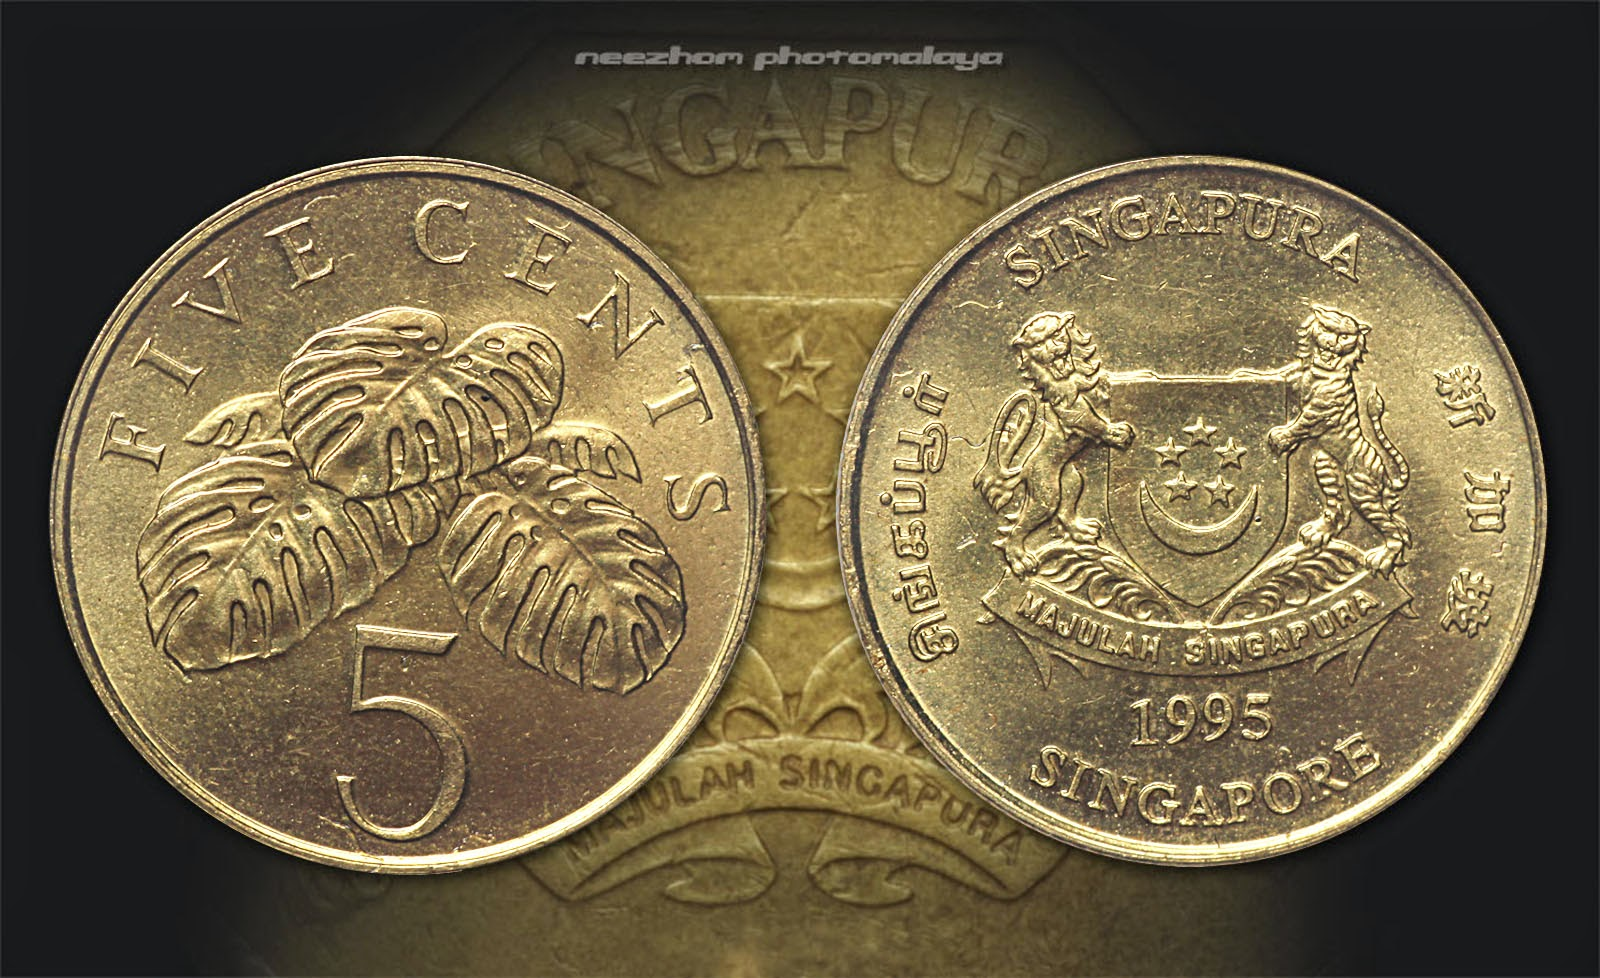 Singapore coin 5 cents 1995